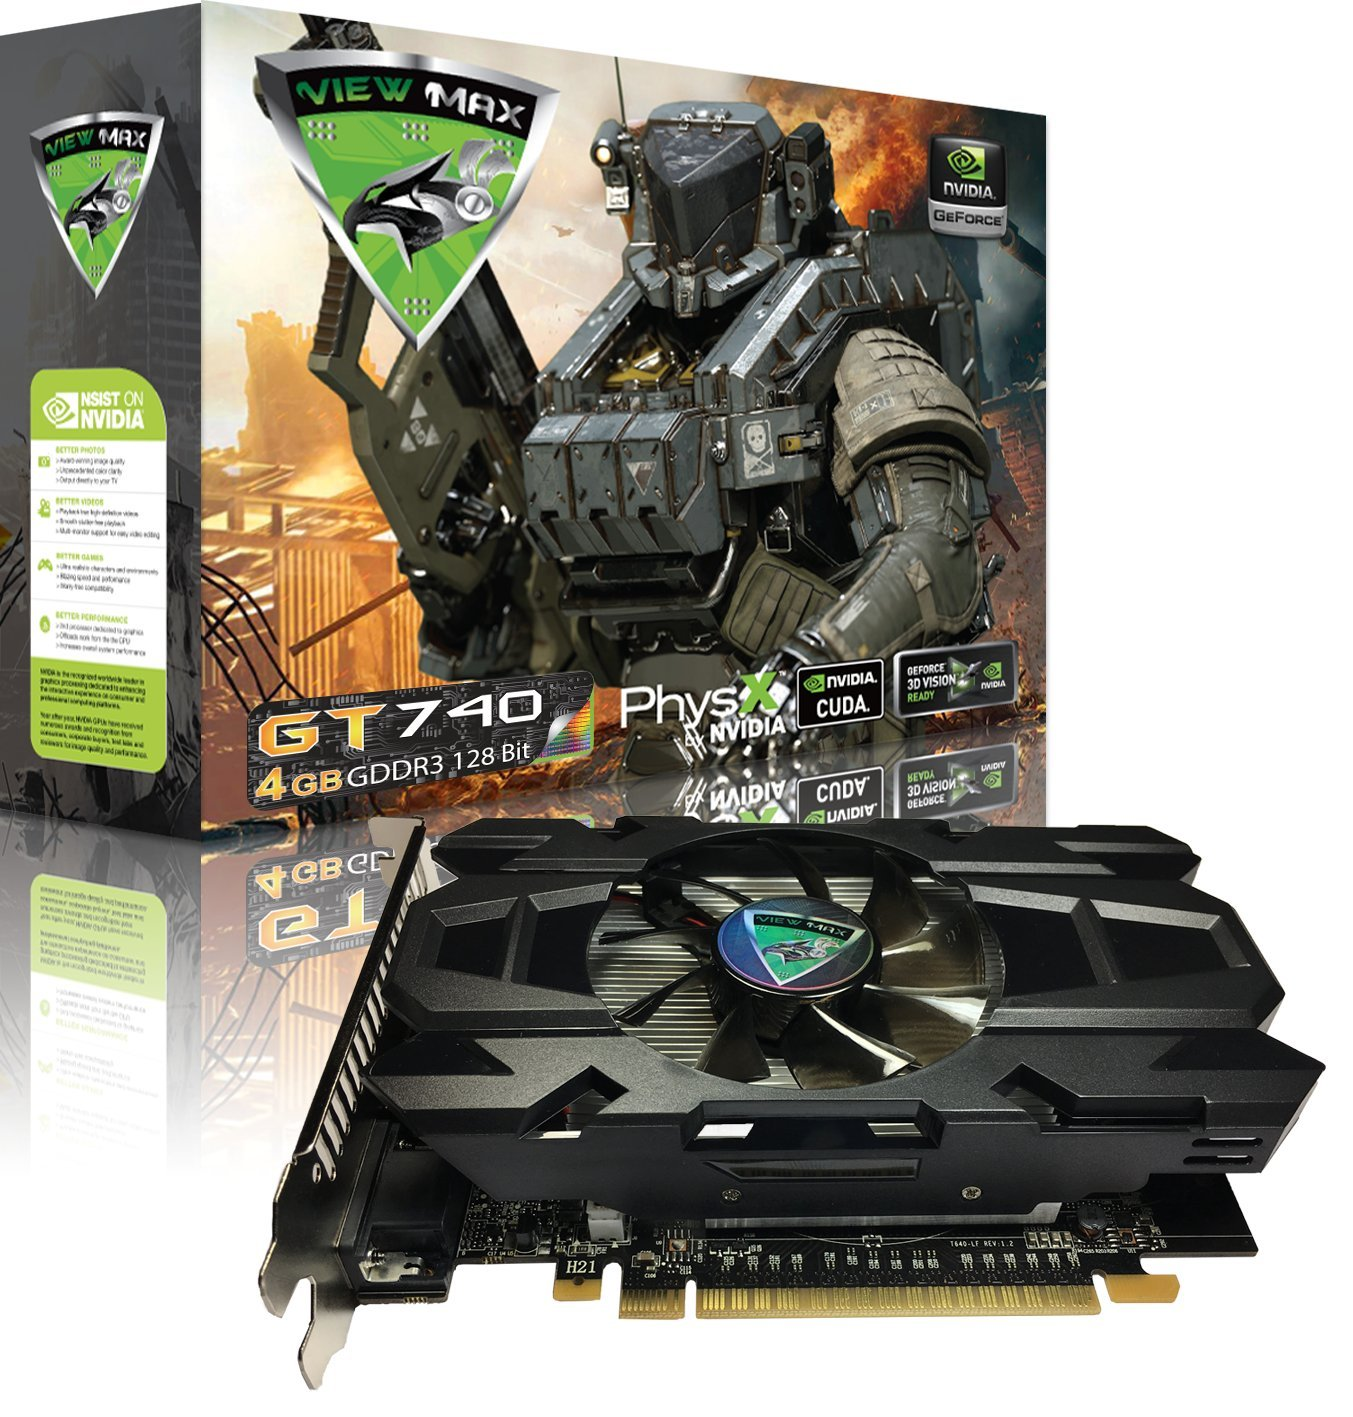 ViewMax GeForce GT 740 4GB GDDR3 128 Bit PCI Express (PCIe) DVI Video Card HDMI & HDCP Support CYBERWOLF Legendary Edition